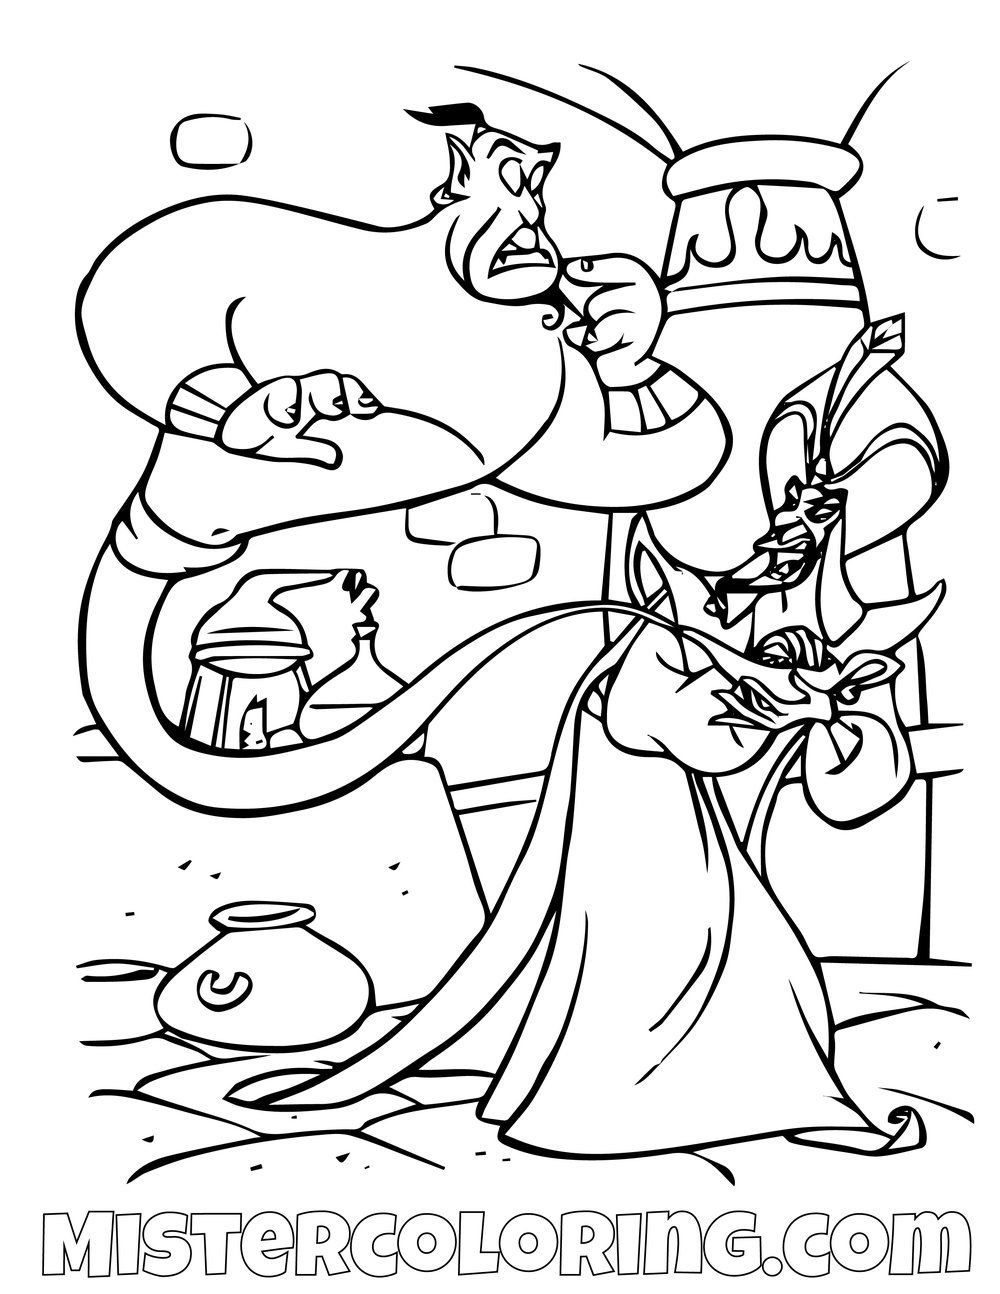 Genie Captured By Jafar Aladdin Coloring Page Princess Coloring Pages Disney Coloring Pages Disney Princess Coloring Pages